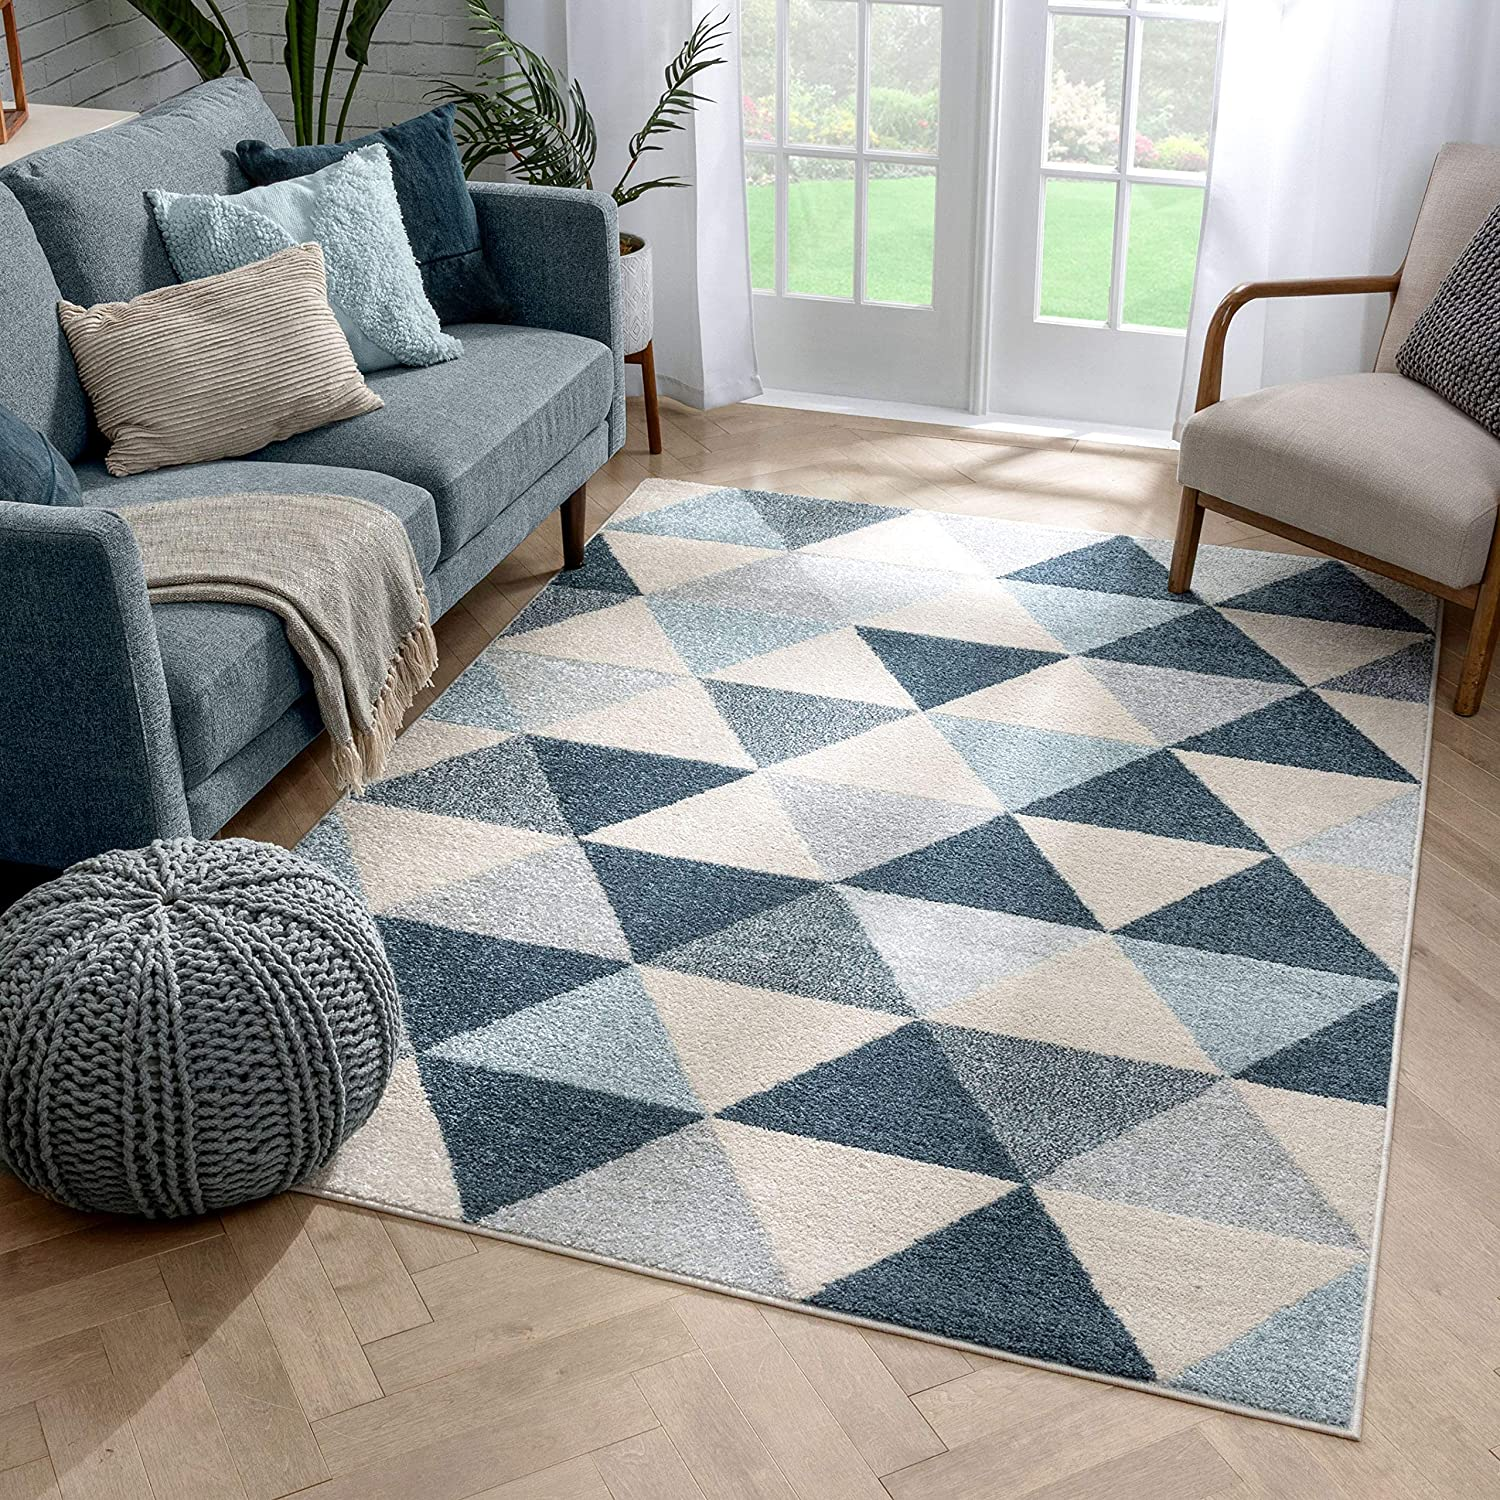 Well Woven Isometric Geometric Dark Blue Triangle Max 74% OFF Area Rug 3x5 Limited Special Price